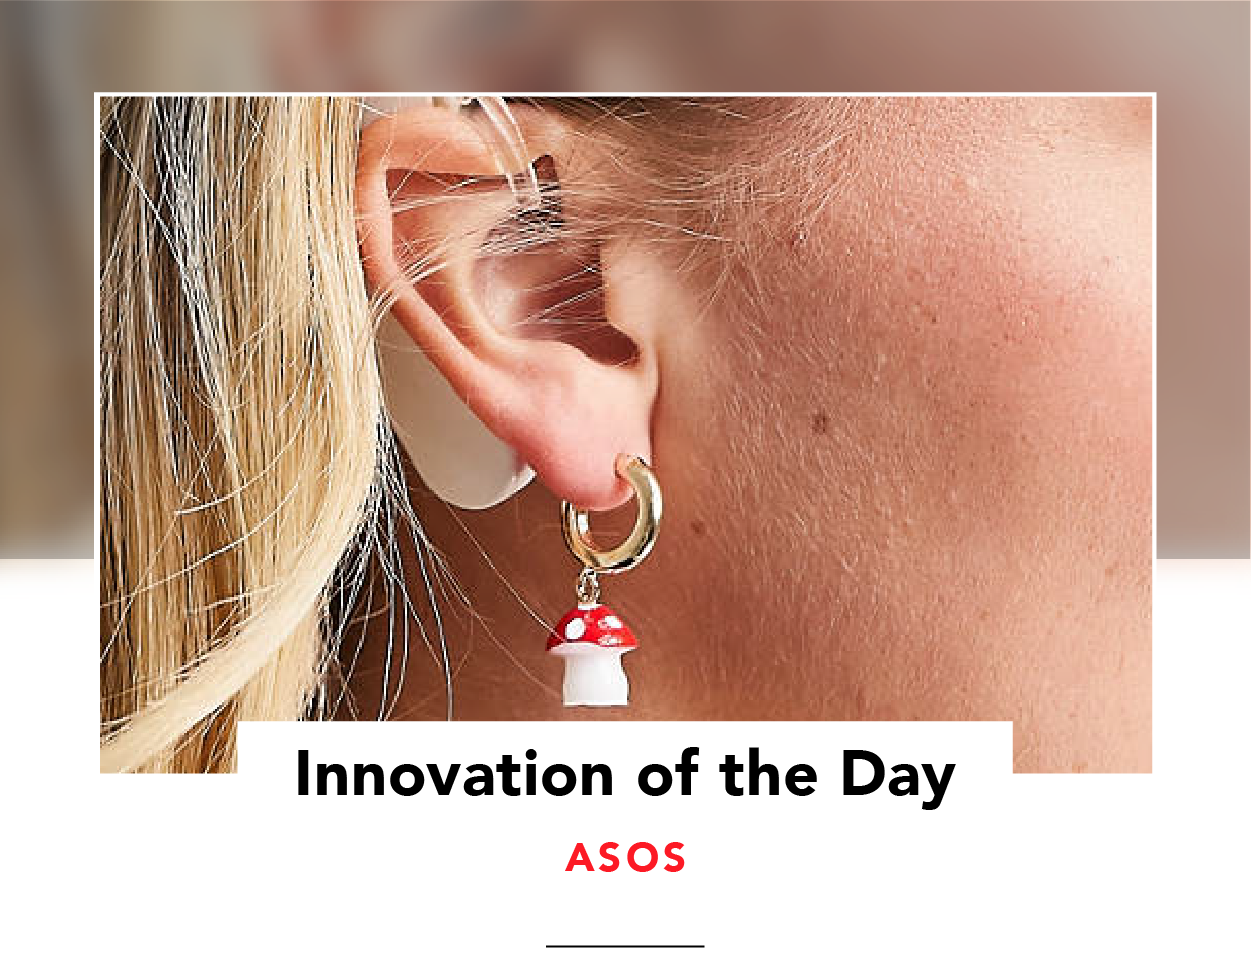 Product image of a mushroom-shaped earring, in an ear wearing a hearing device